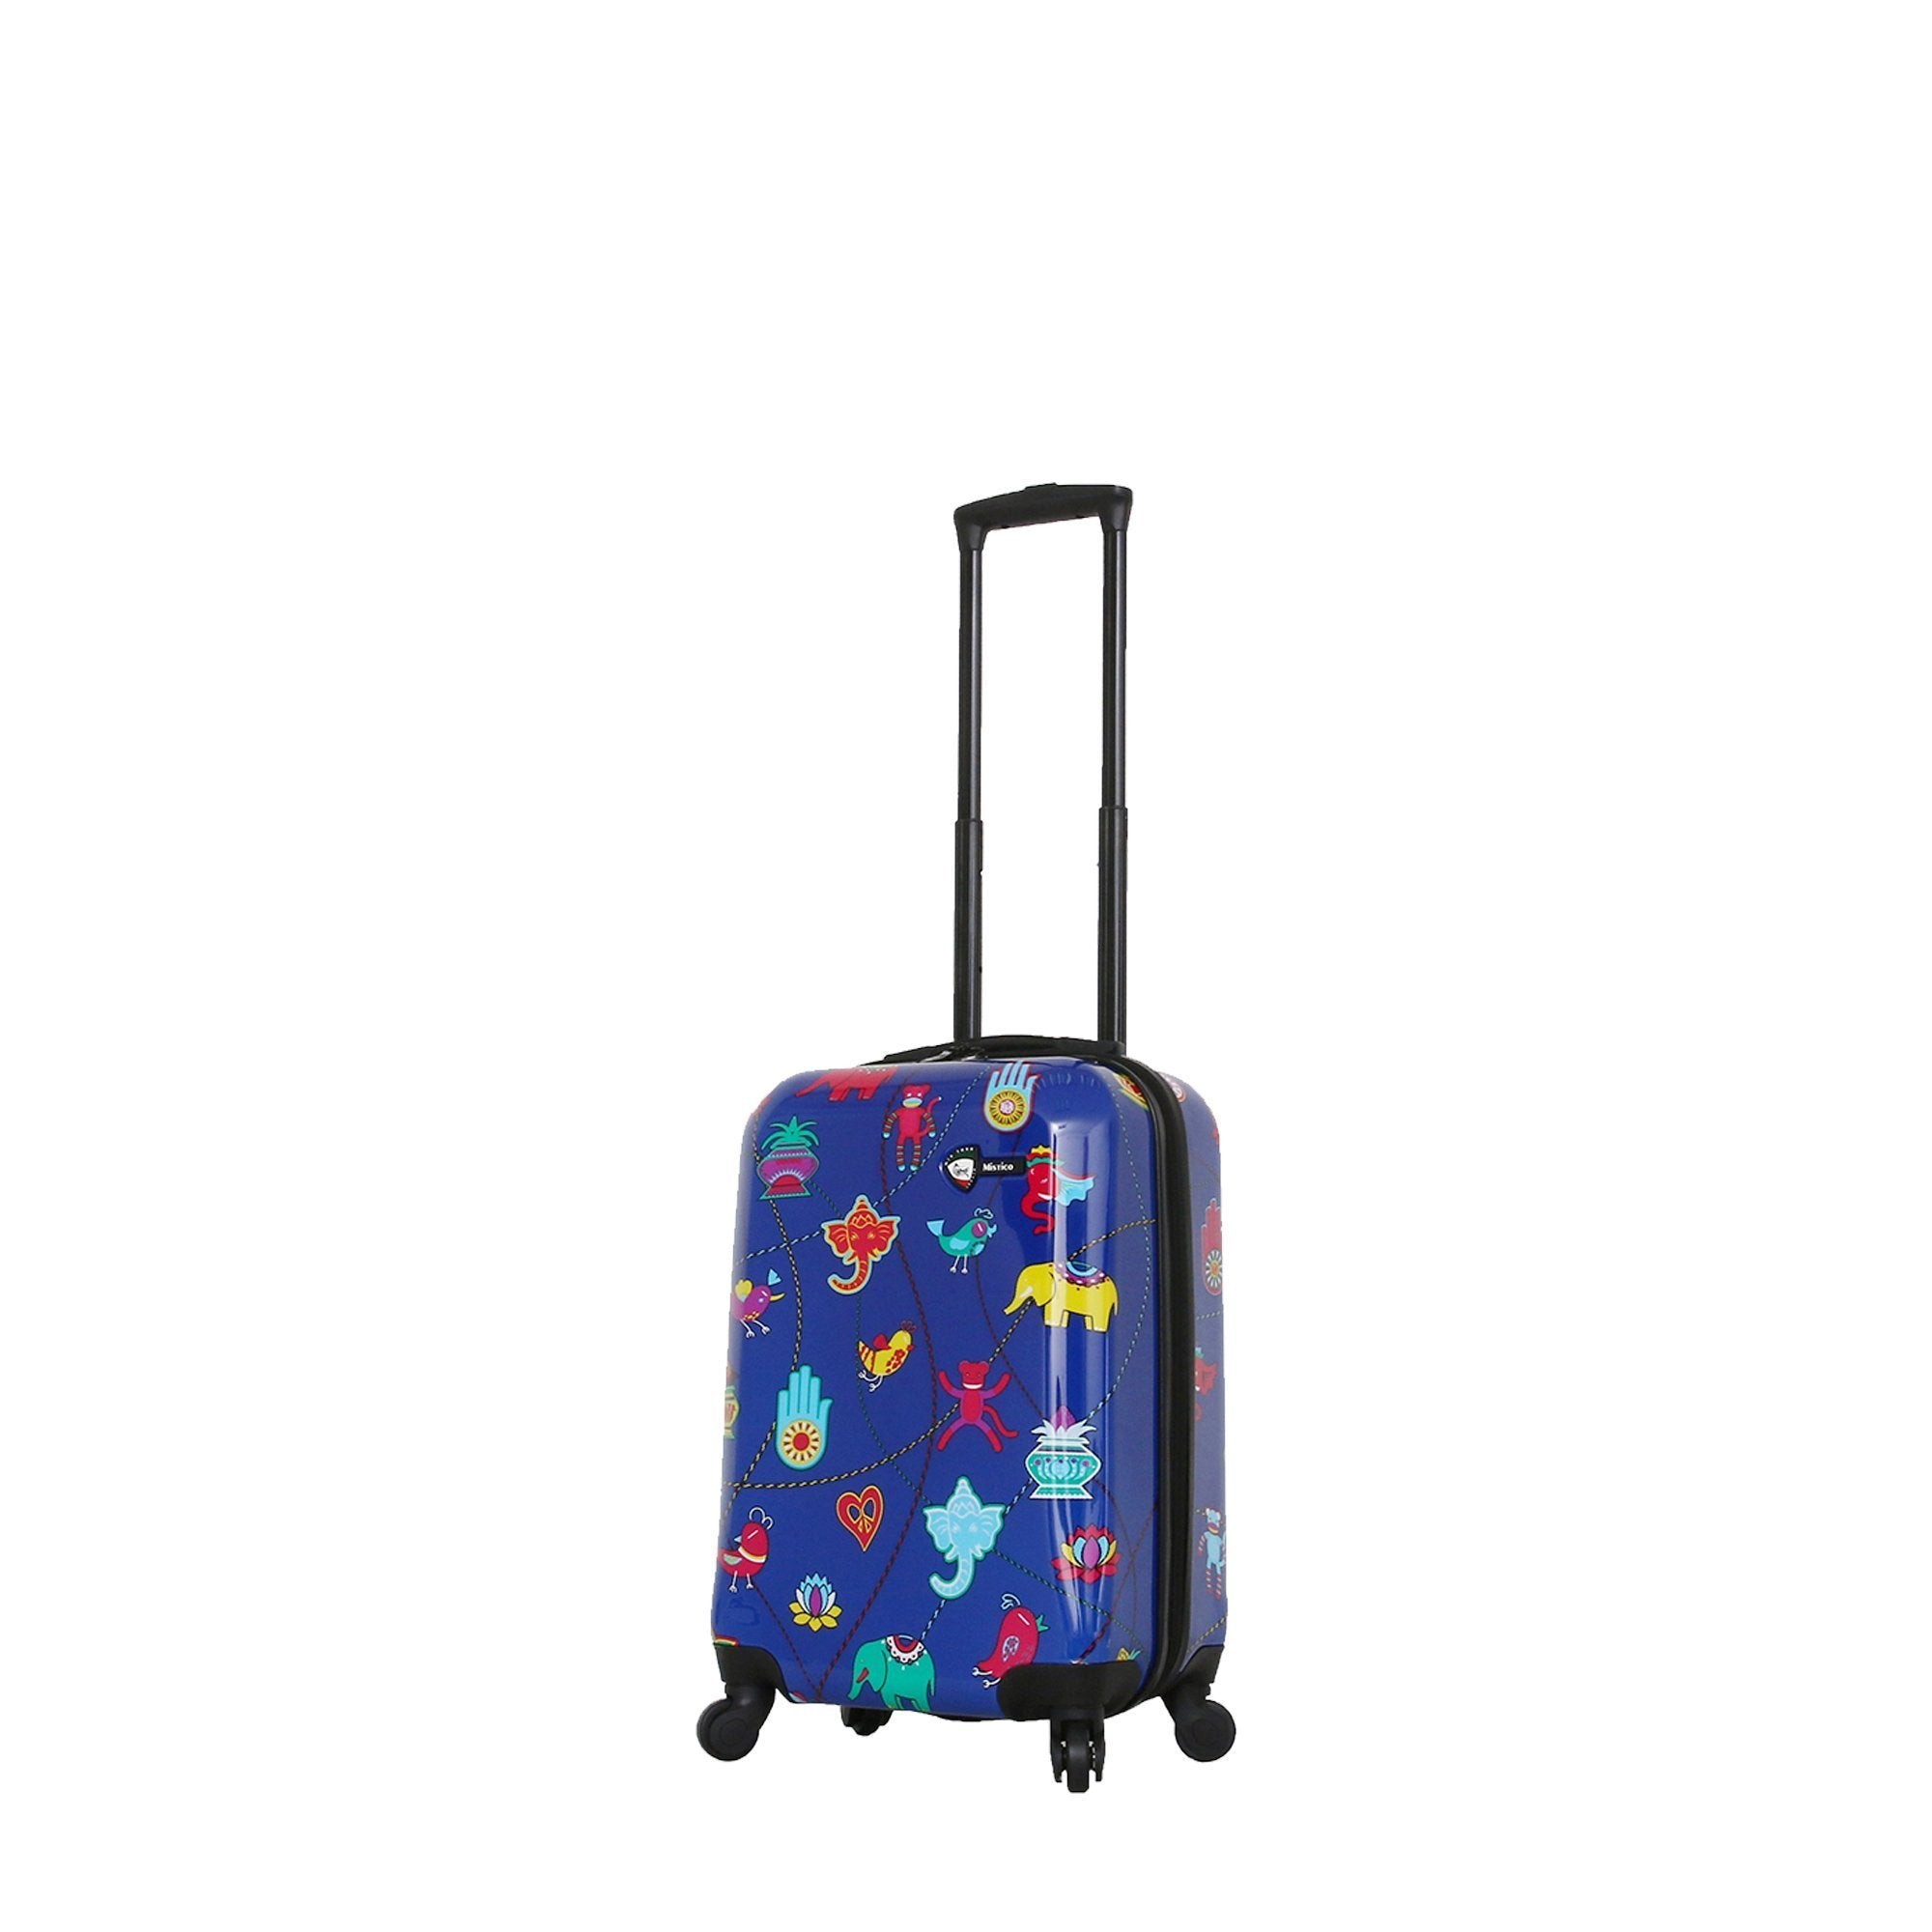 Mistico Hardside Spinner Carry On Luggage by Mia Toro